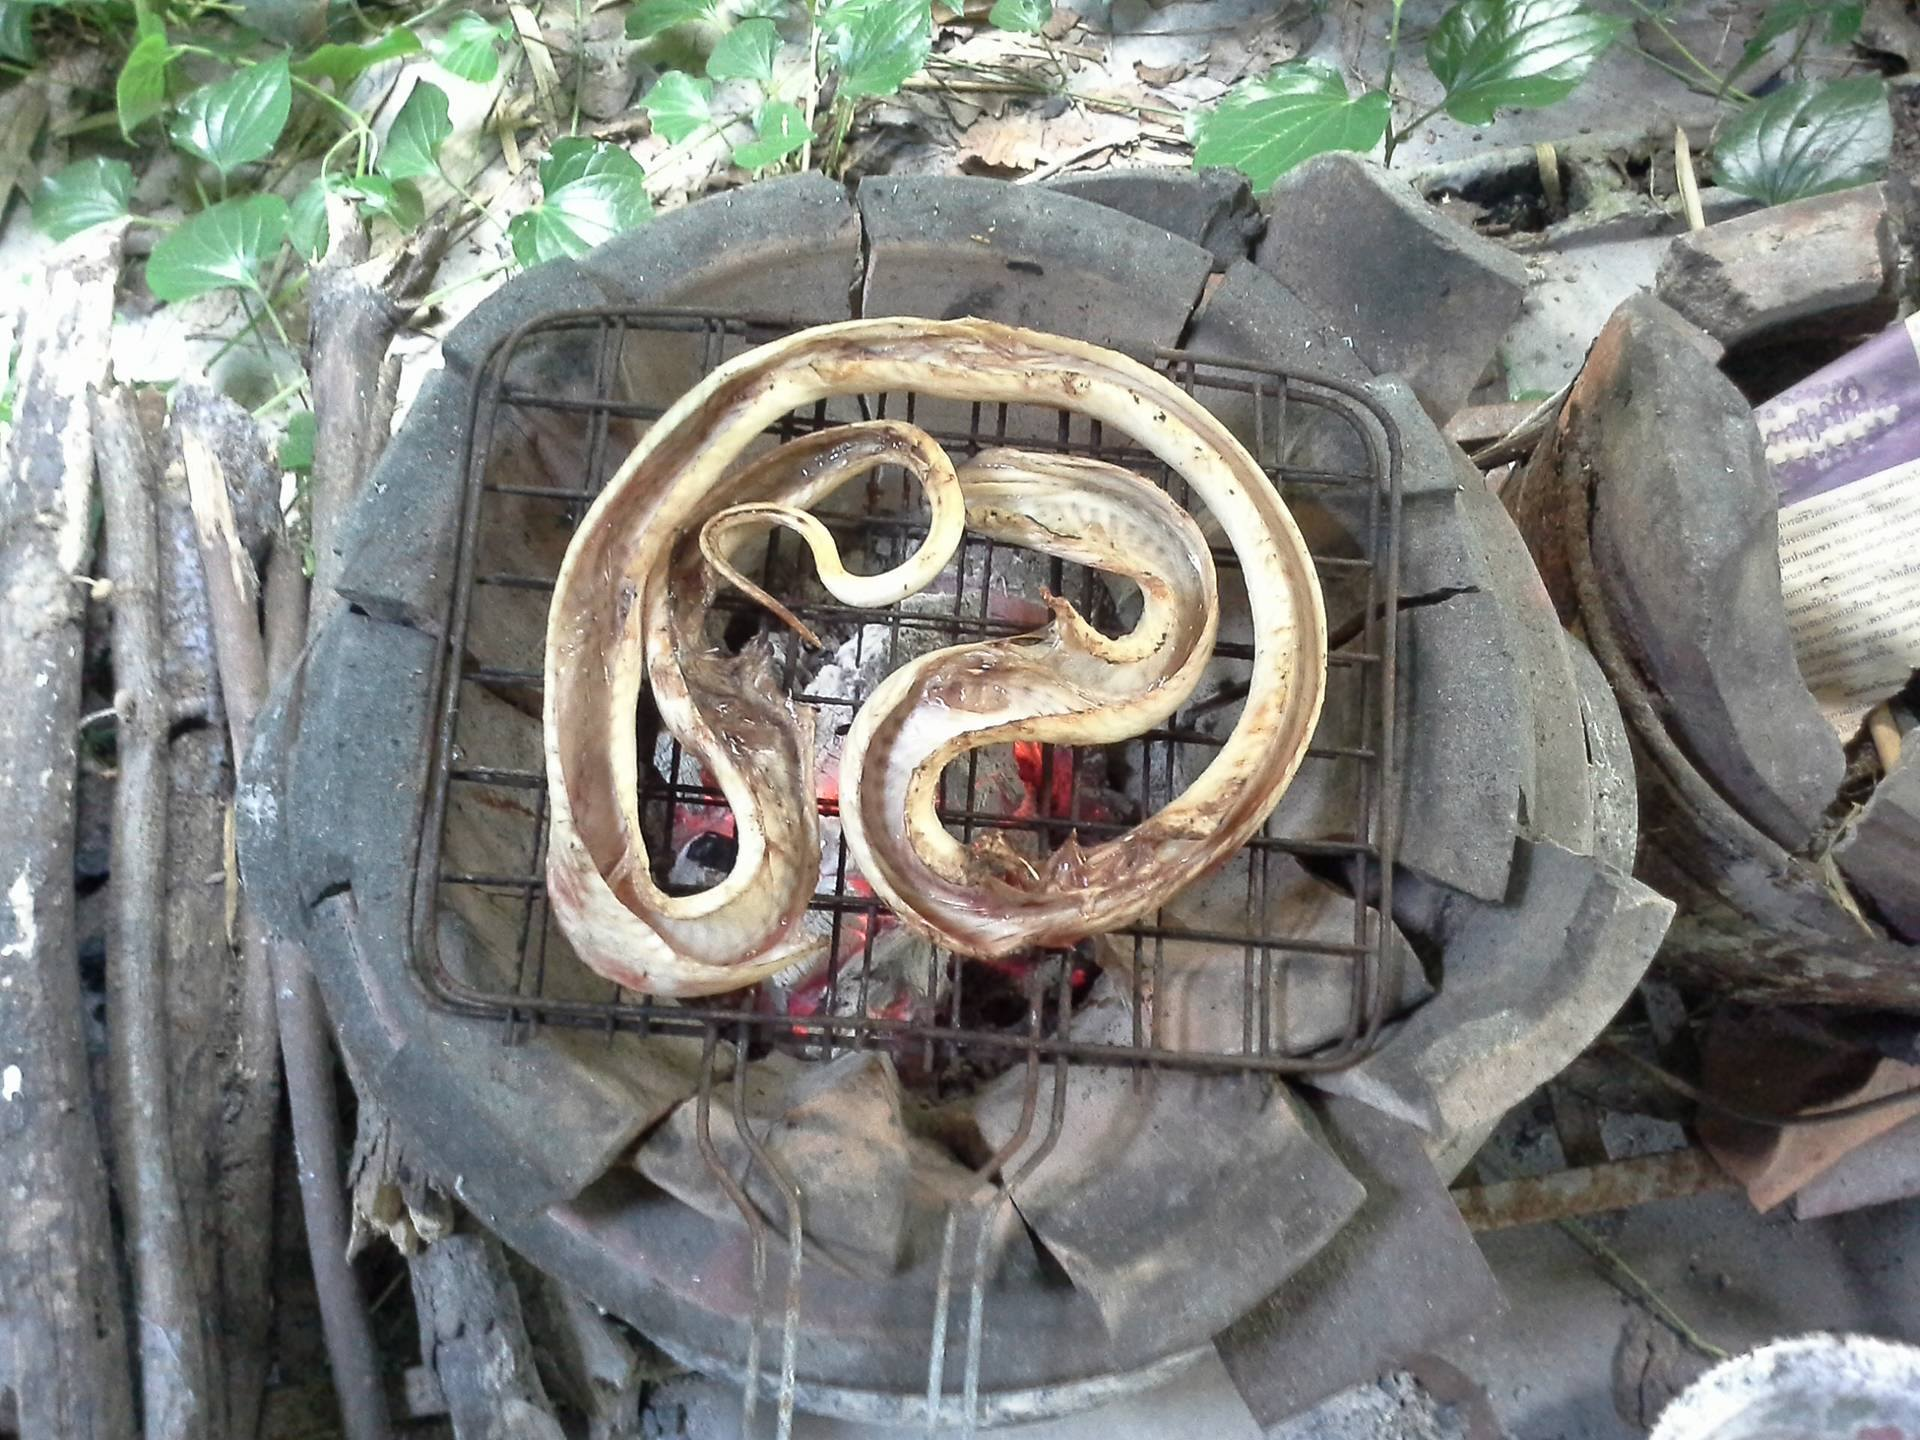 Skinned Cobra on the grill.